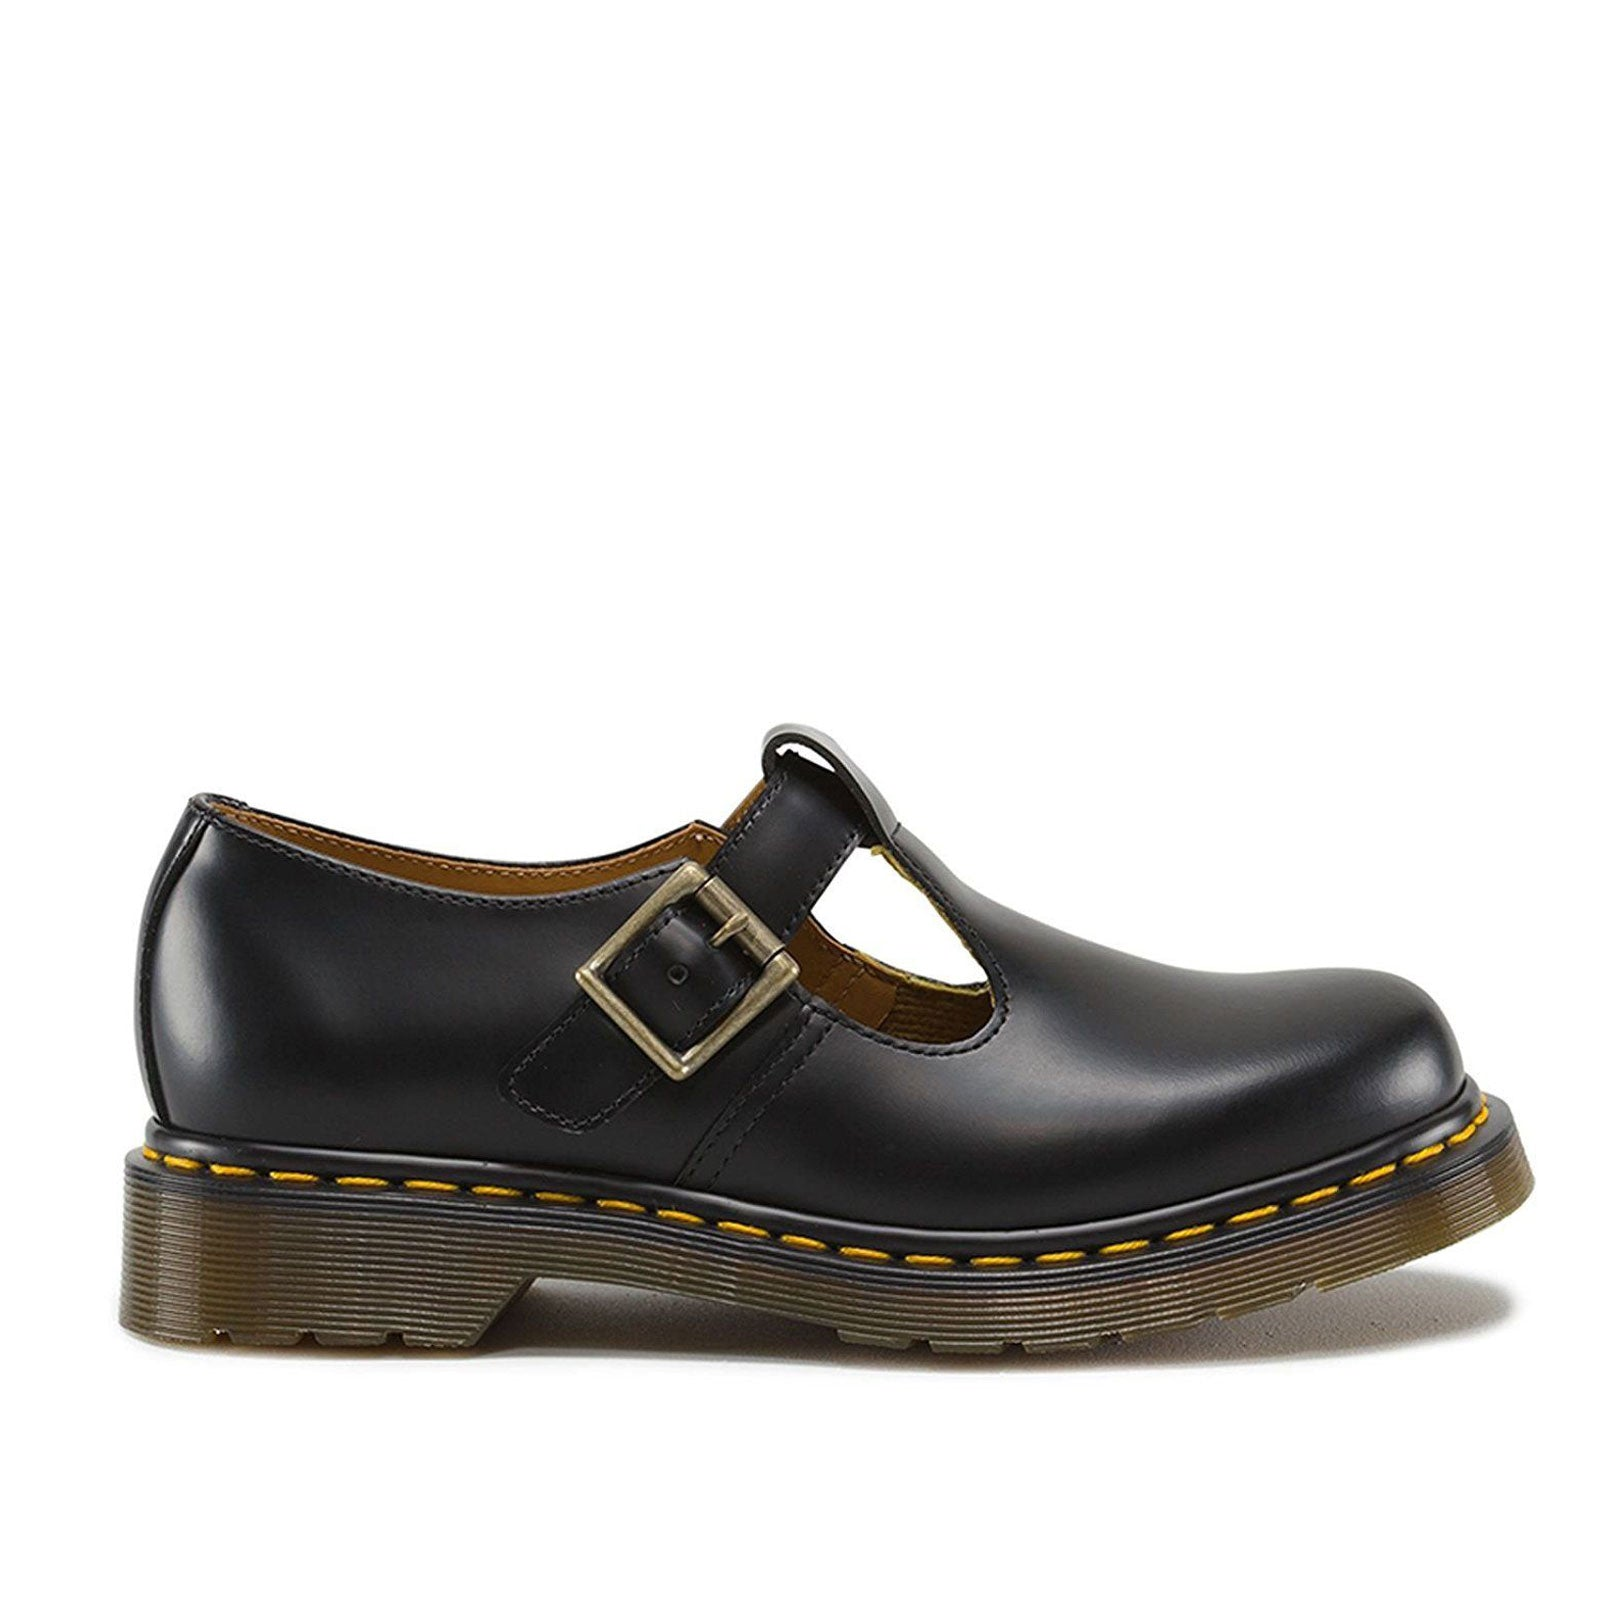 Dr. Martens Polley-Black